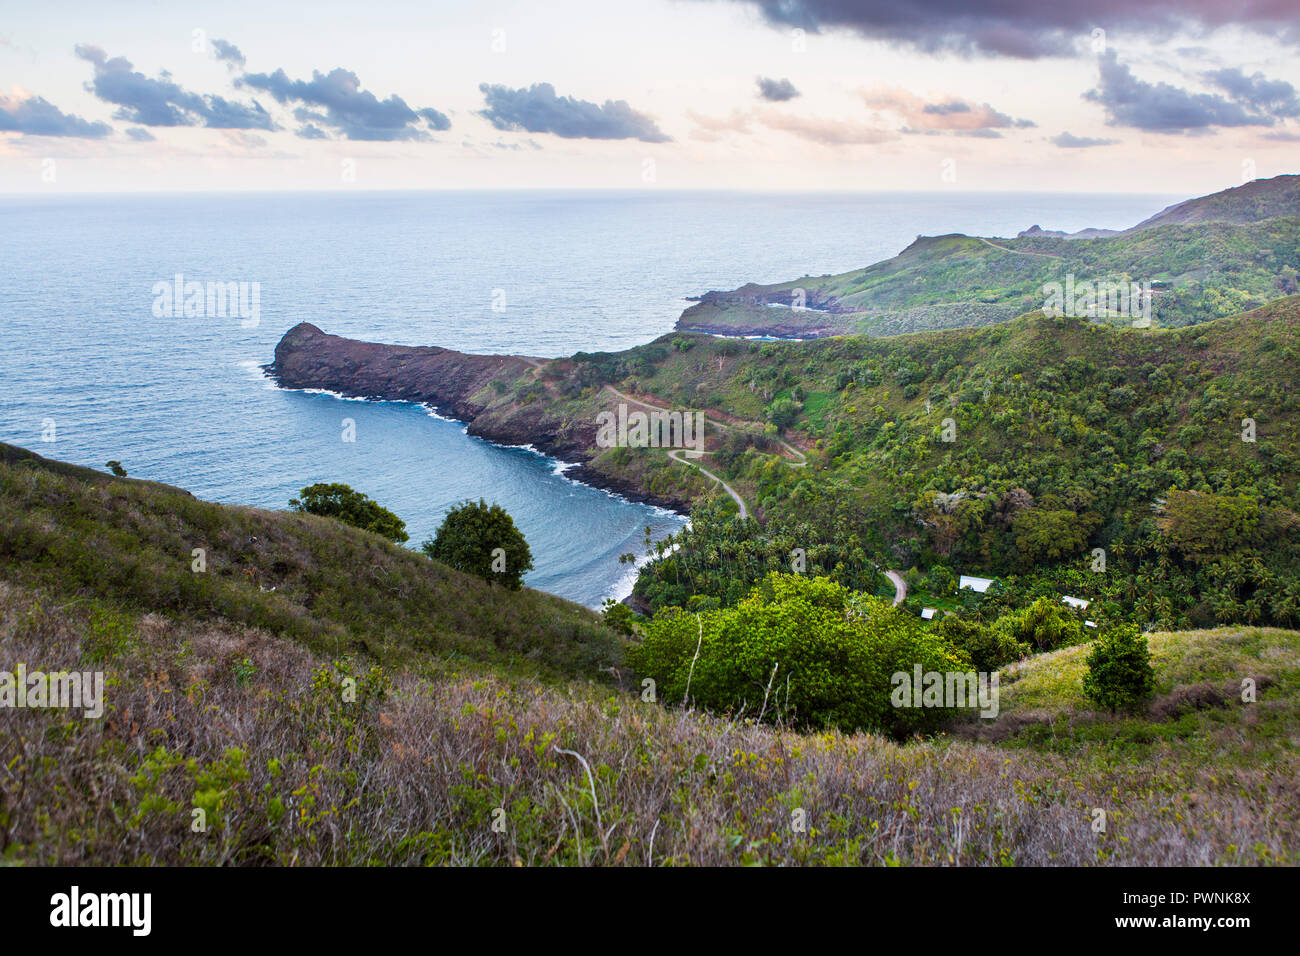 Landscape and Tautepe cap at dusk on the north coast of the island of Hiva Oa, Marquesas Islands, French Polynesia - Stock Image